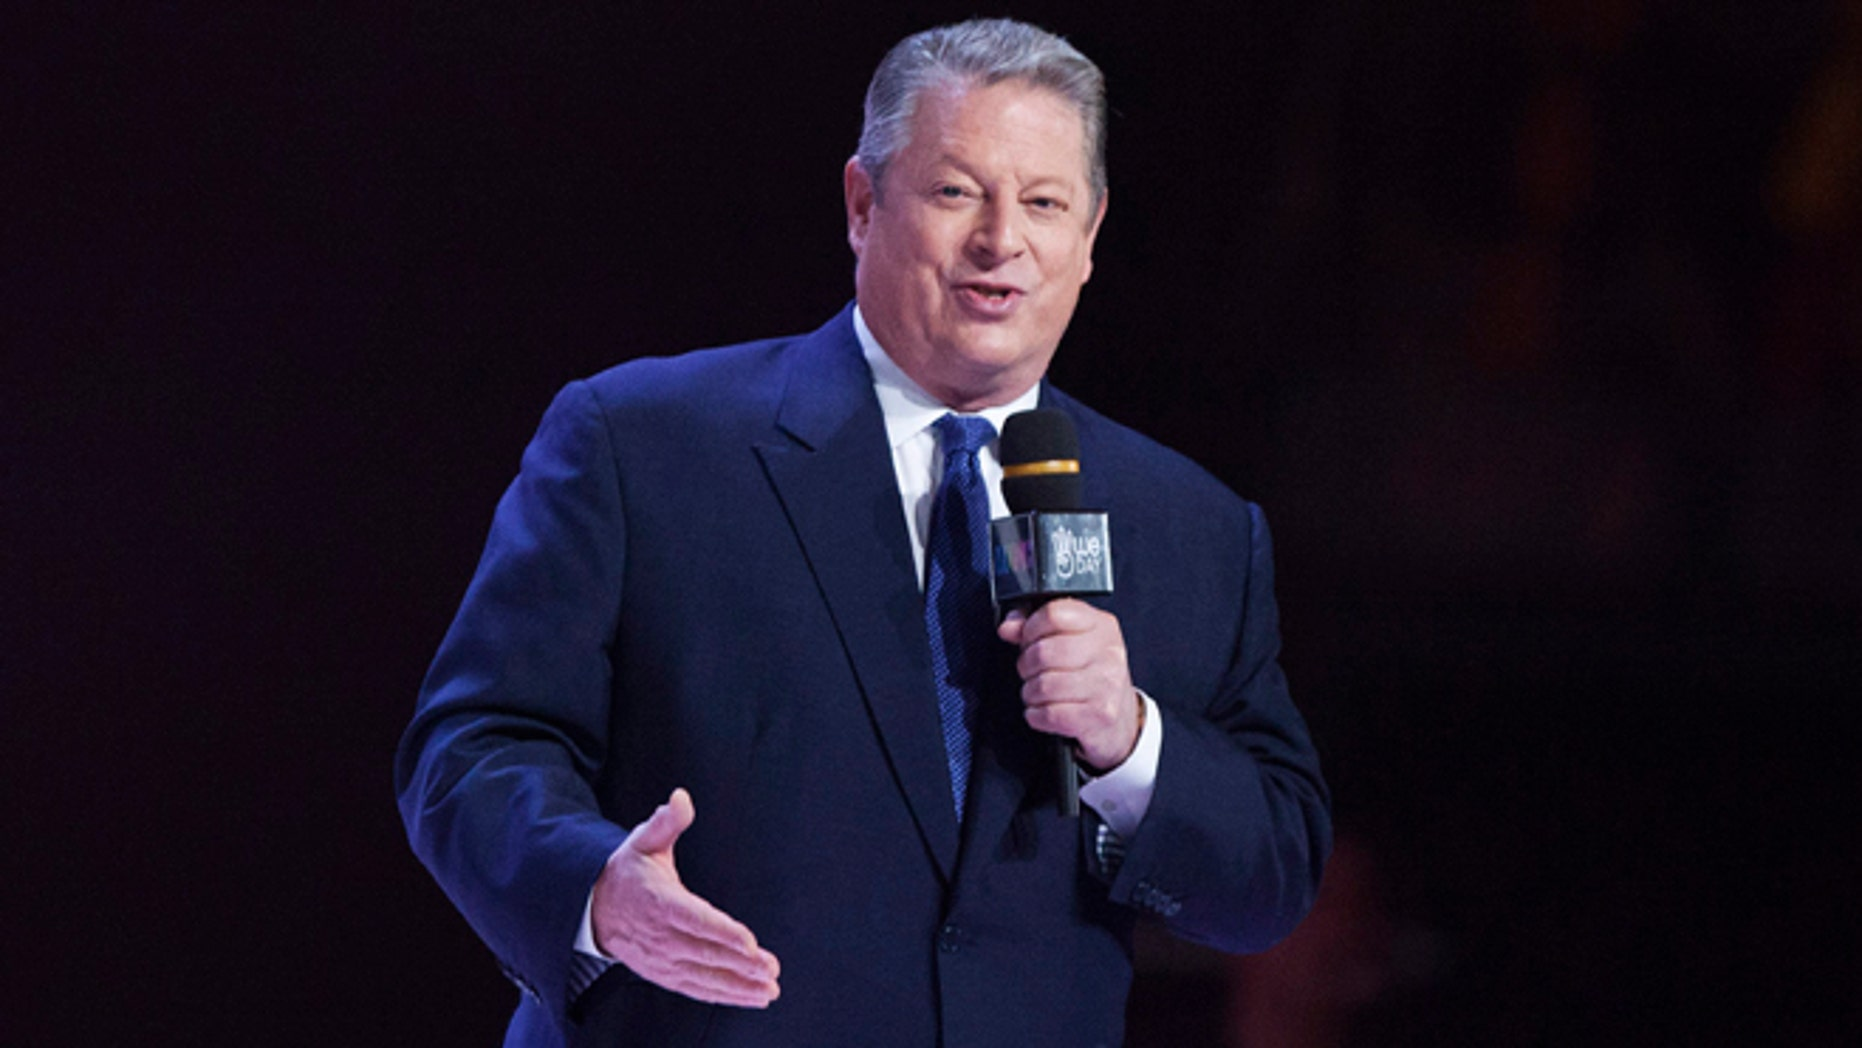 Sept. 28, 2012: Former Vice President Al Gore speaks at an event in Toronto.